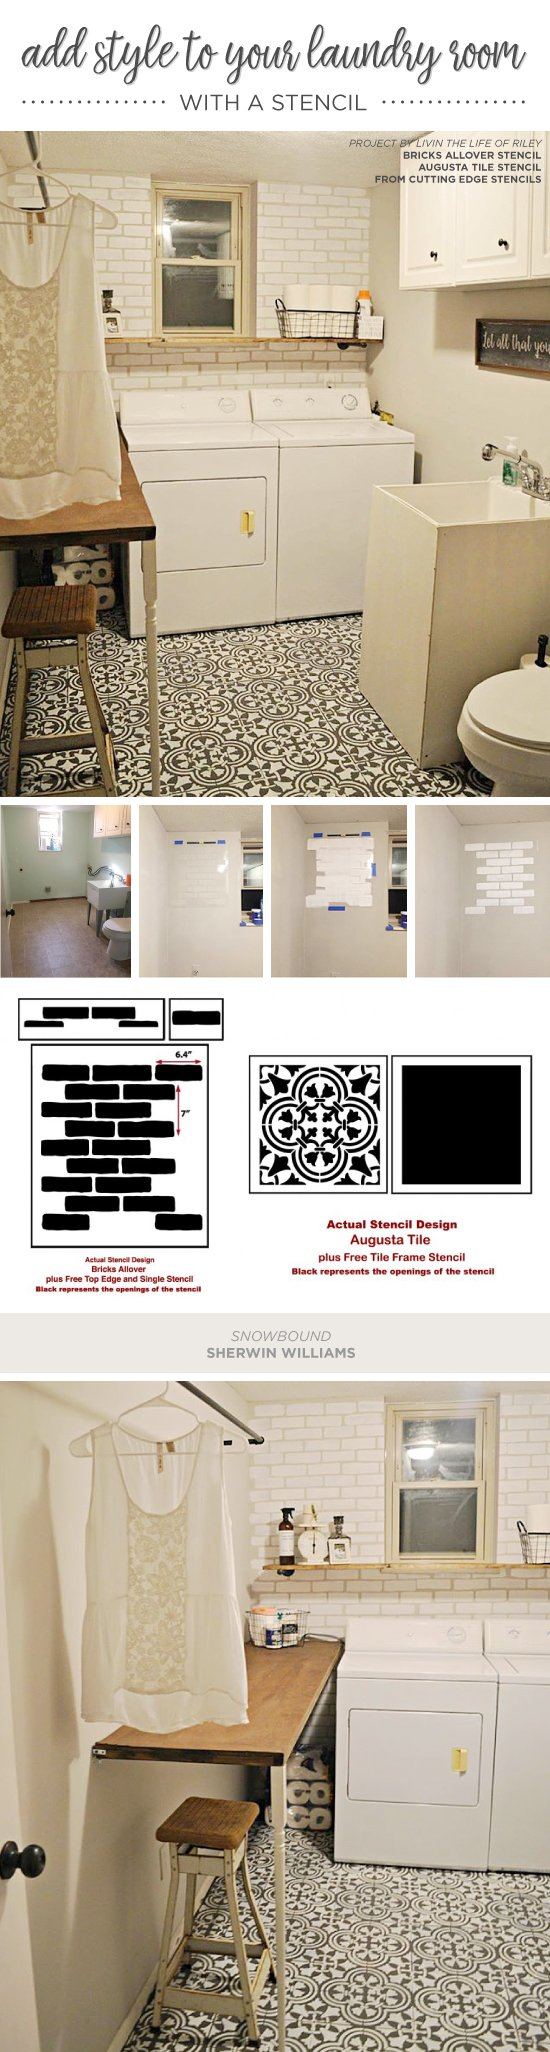 Cutting Edge Stencils shares a DIY stenciled laundry room accent wall that achieves a subway tile look using the Brick Allover Stencil. http://www.cuttingedgestencils.com/bricks-stencil-allover-pattern-stencils.html